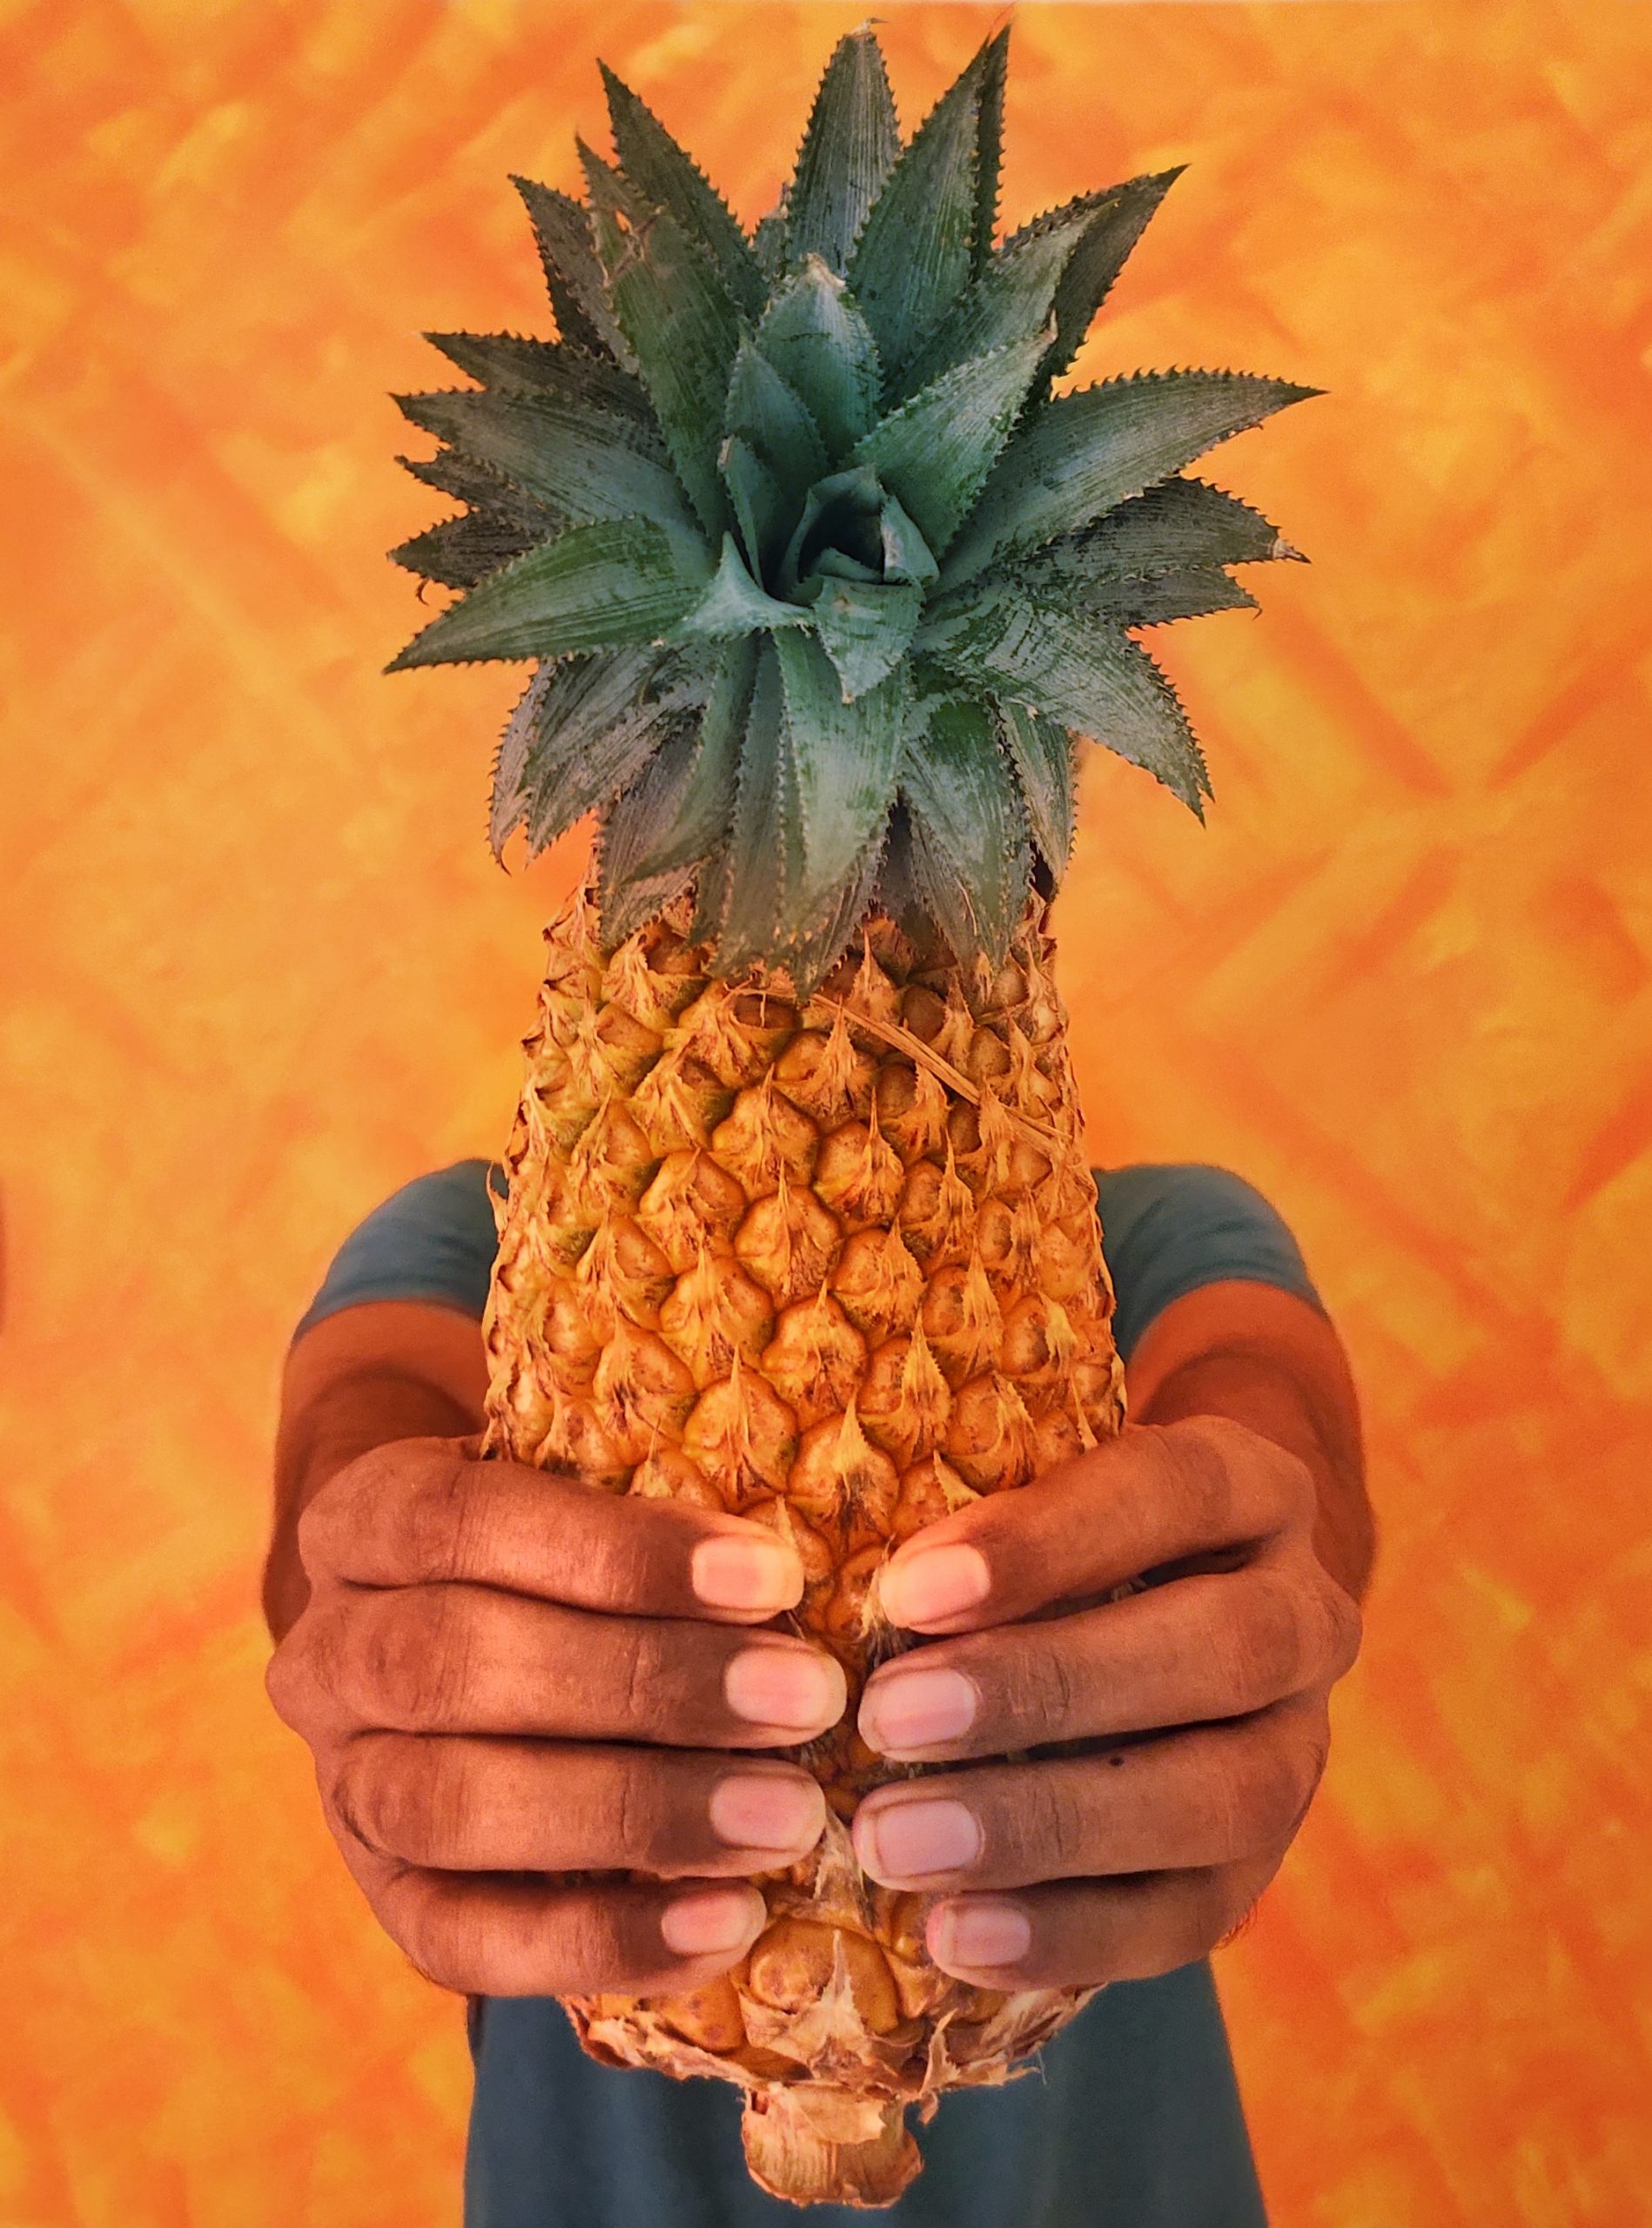 A Hand Holding a Pineapple on Focus